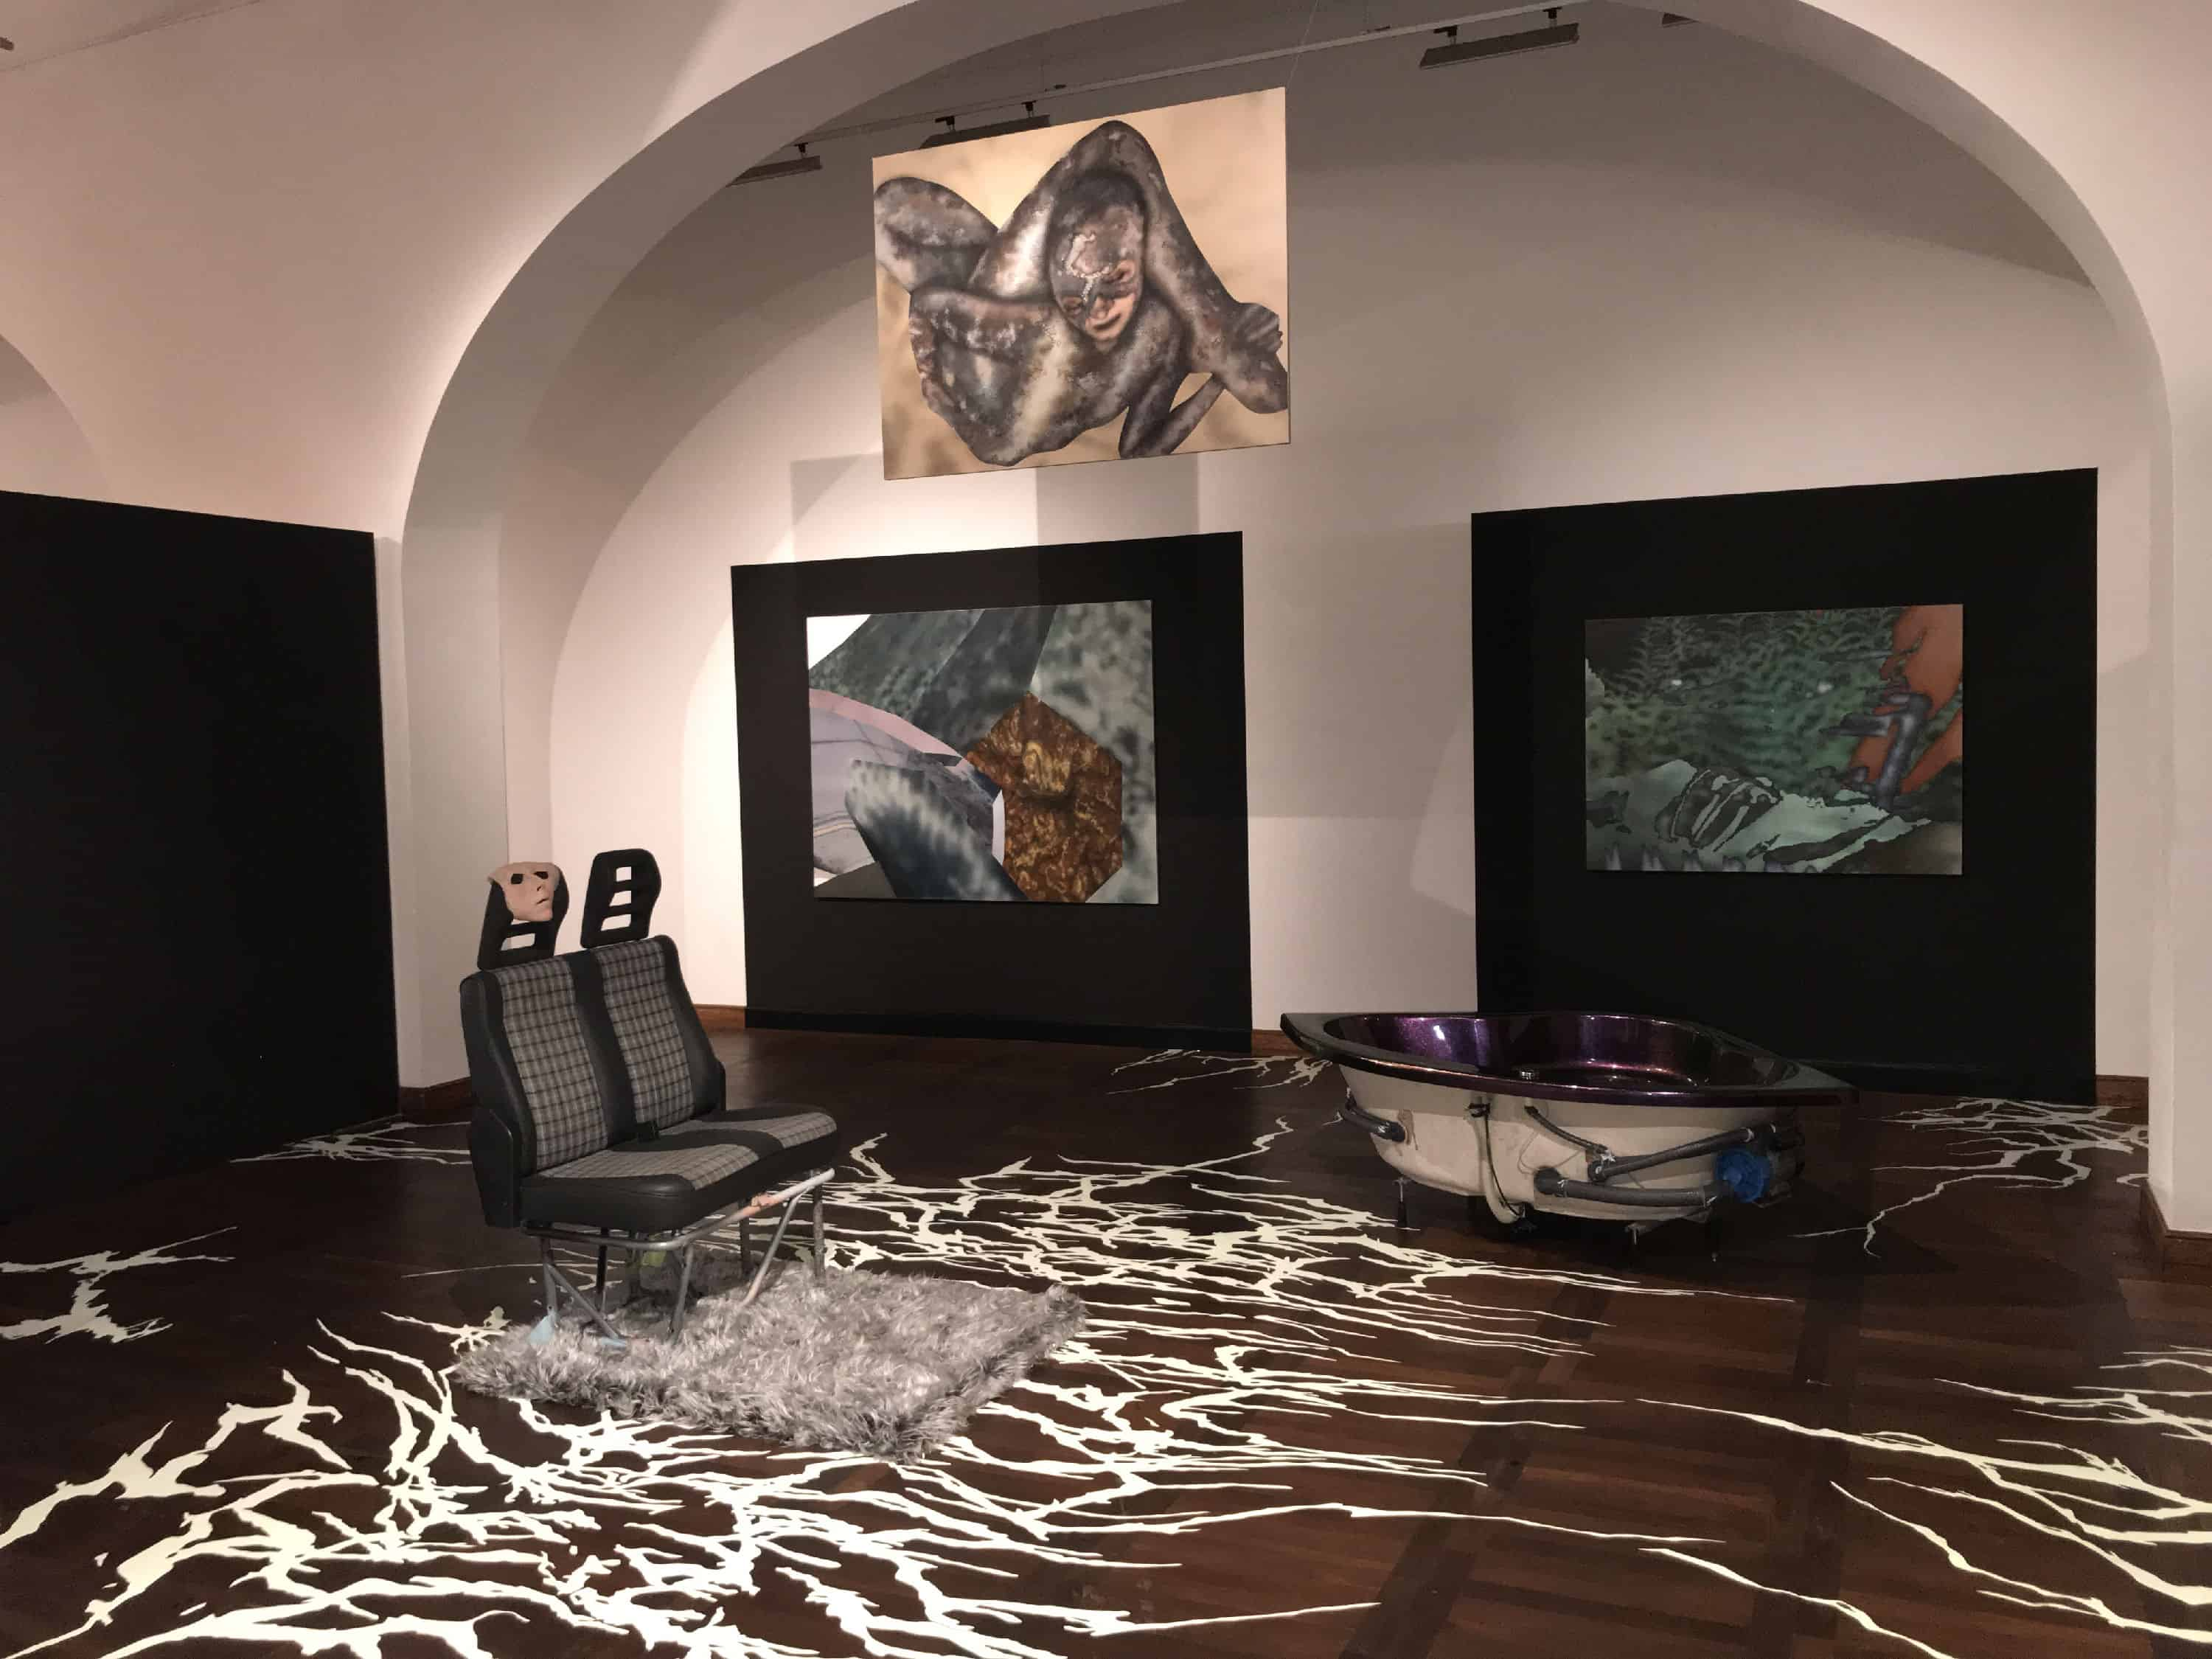 View of the exhibition %22Snakes, Dragons and Phantoms%22 by Aleksander Błaszkiewicz in the Armoury of Arts in Gdańsk, courtesy: Aleksander Błaszkiewicz